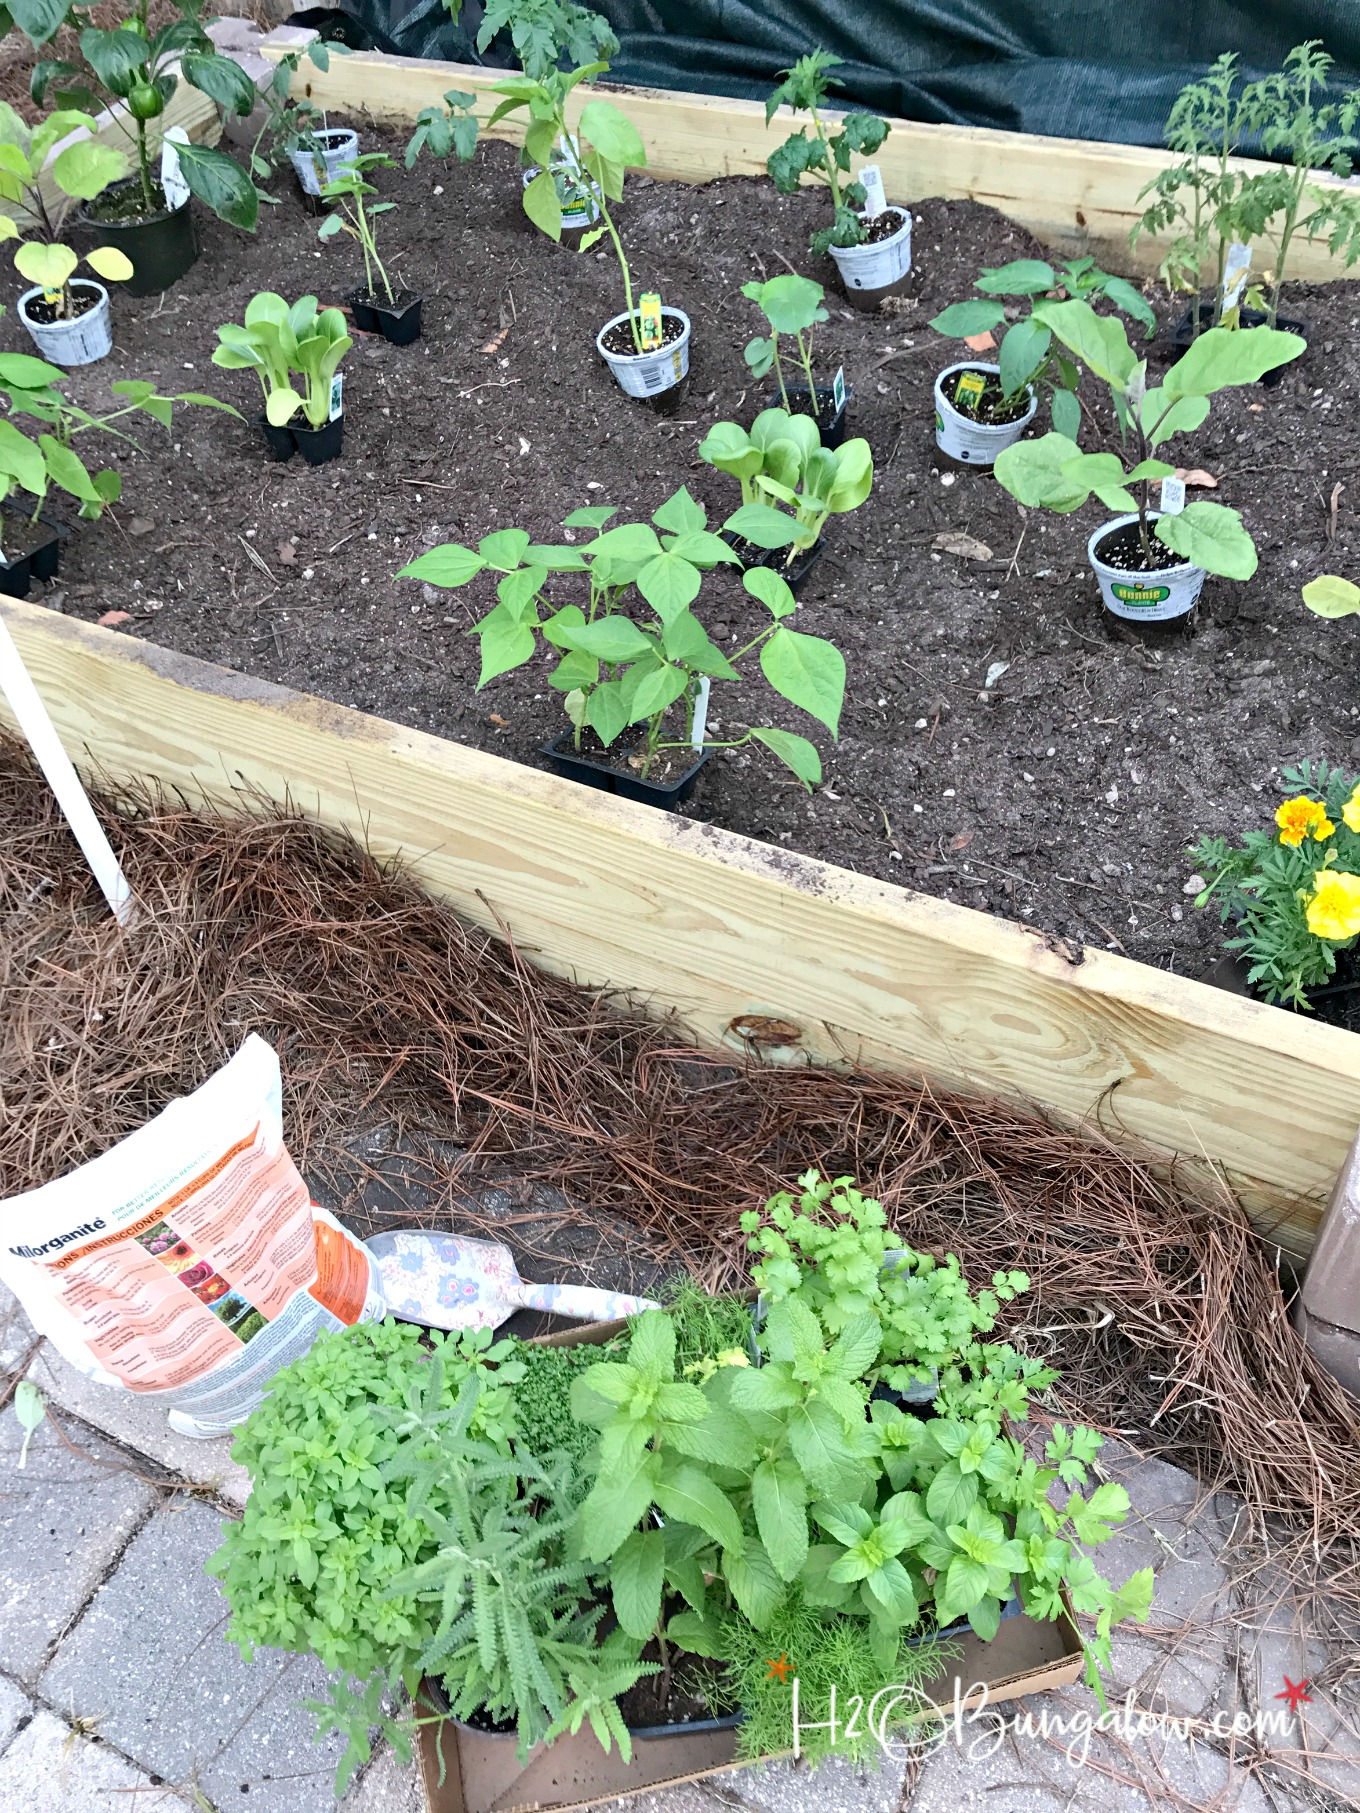 How to build a raised vegetable garden bed tutorial. Simple DIY steps, useful planting tips to make even the most novice raised bed gardener successful. Find over 450 more useful home improvement and home decor projects at H2OBungalow.com.